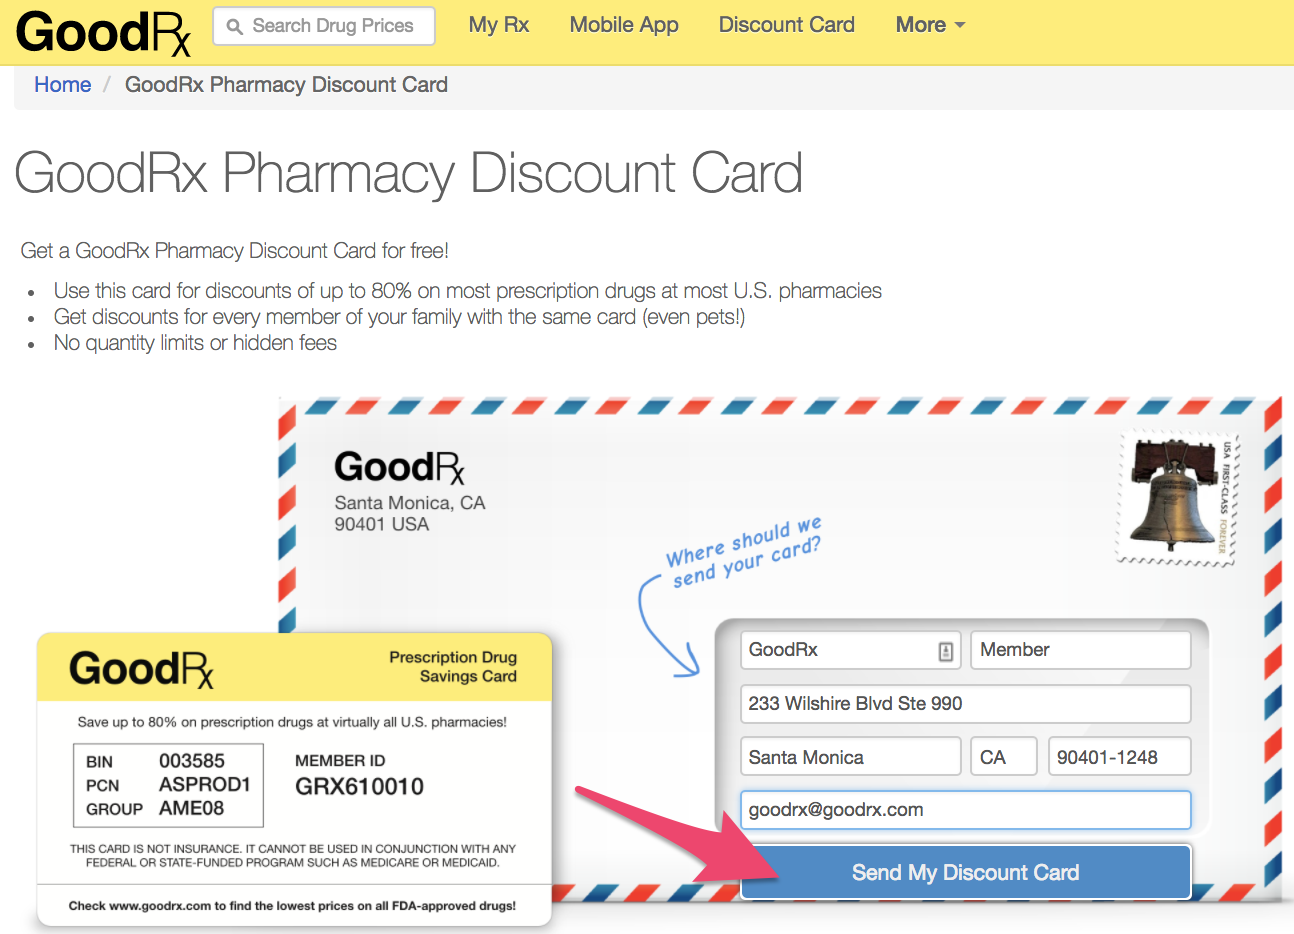 How can I request a discount card? – Support